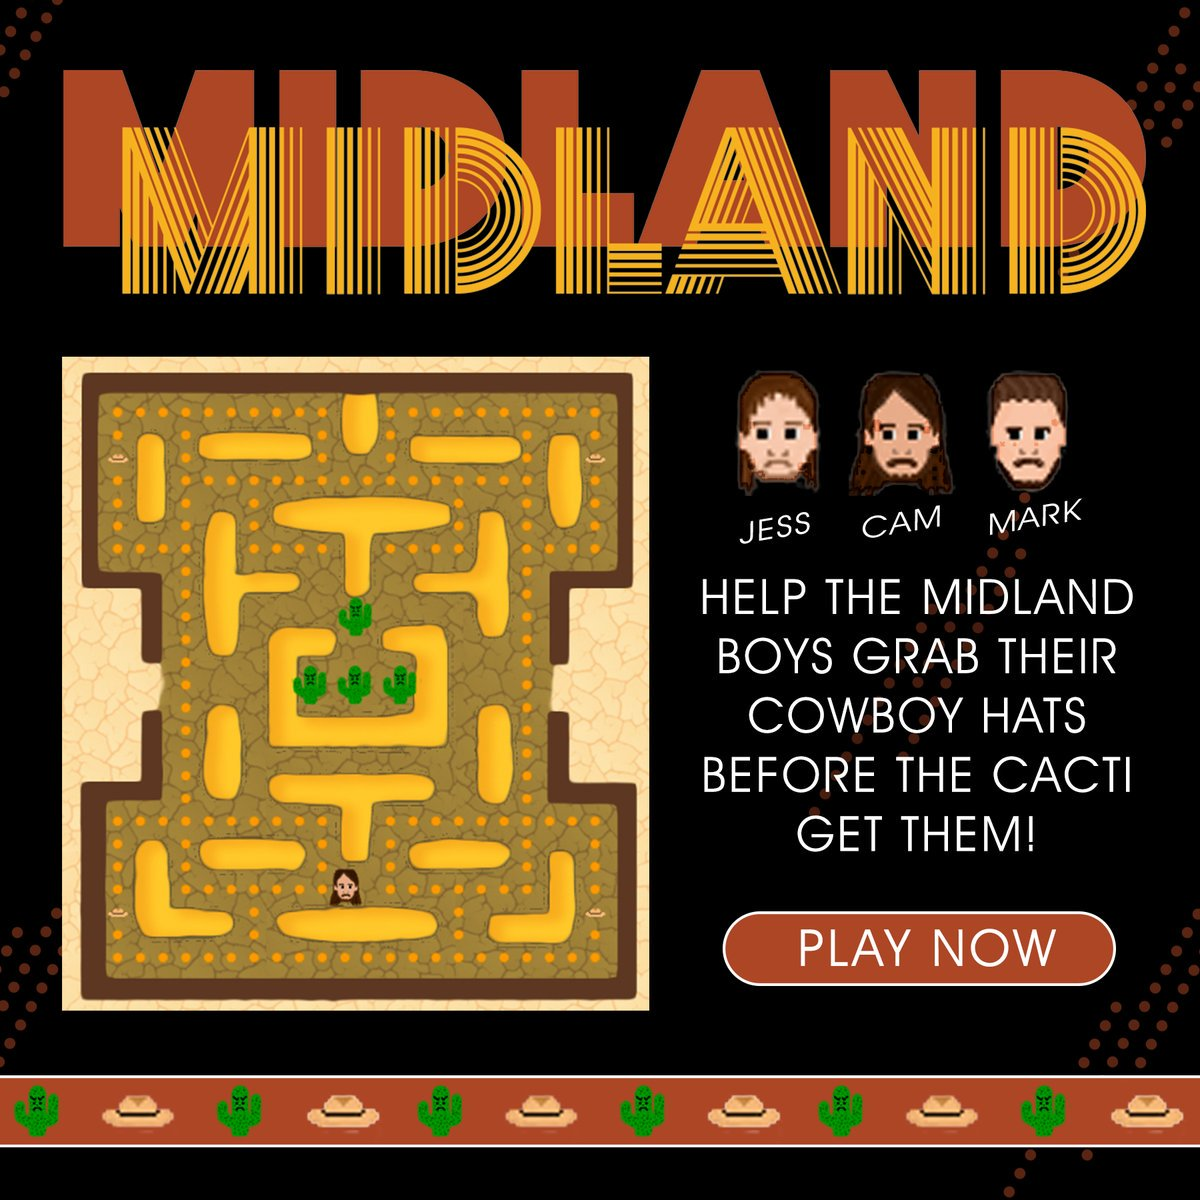 Login to @Spotify and have some fun with @MidlandOfficial's Maze Game! Play now >>> https://t.co/o0fF8veuWD https://t.co/VpNRlG7idl